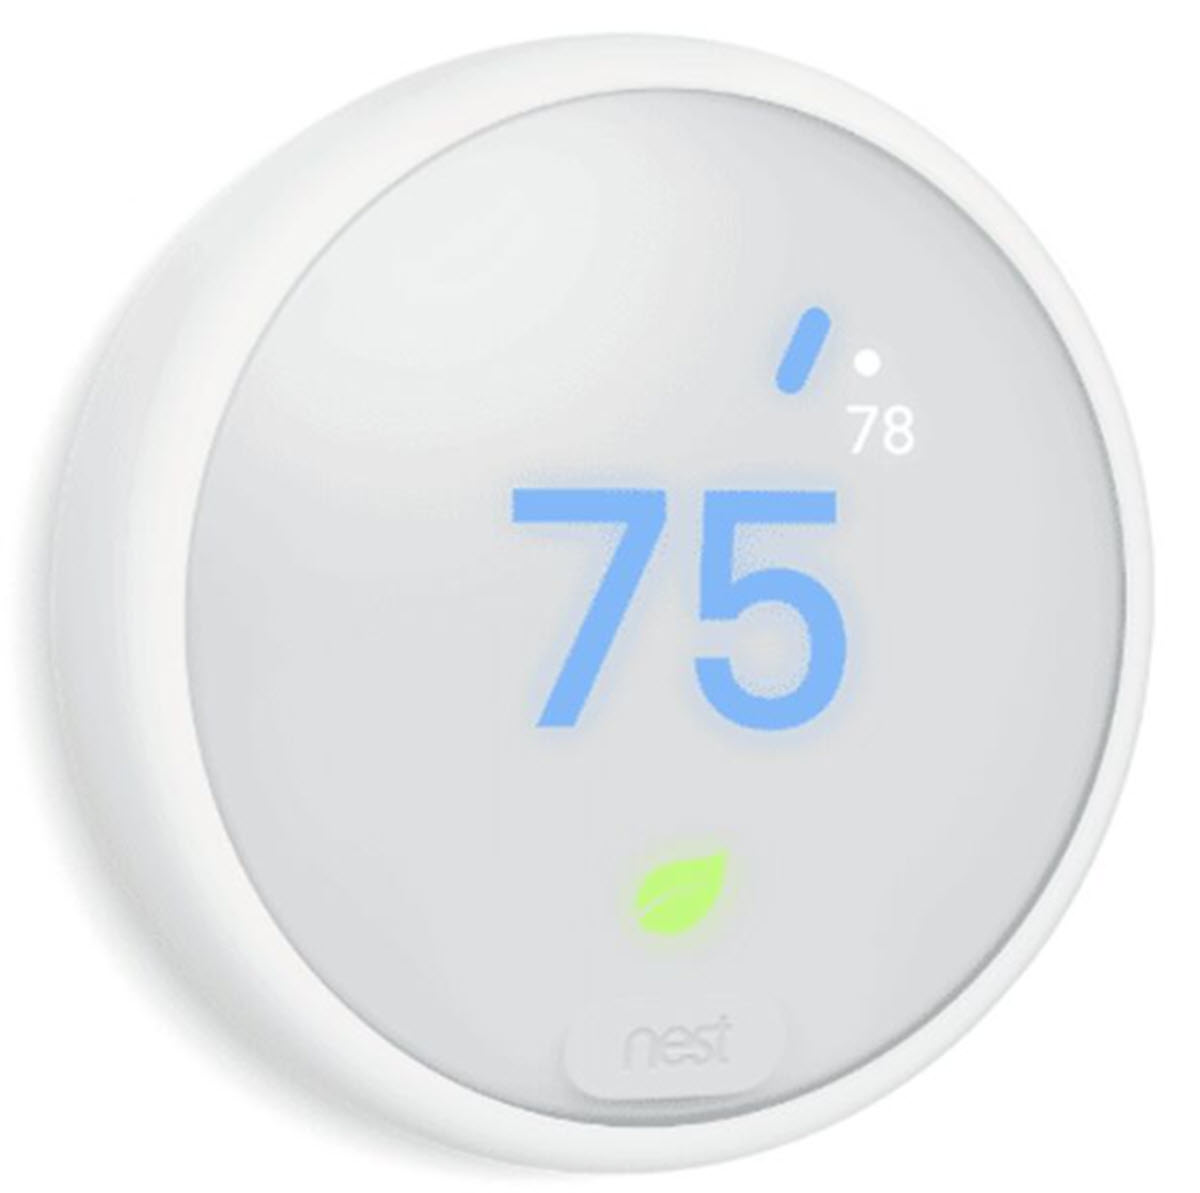 Photo of Google Nest E Thermostat